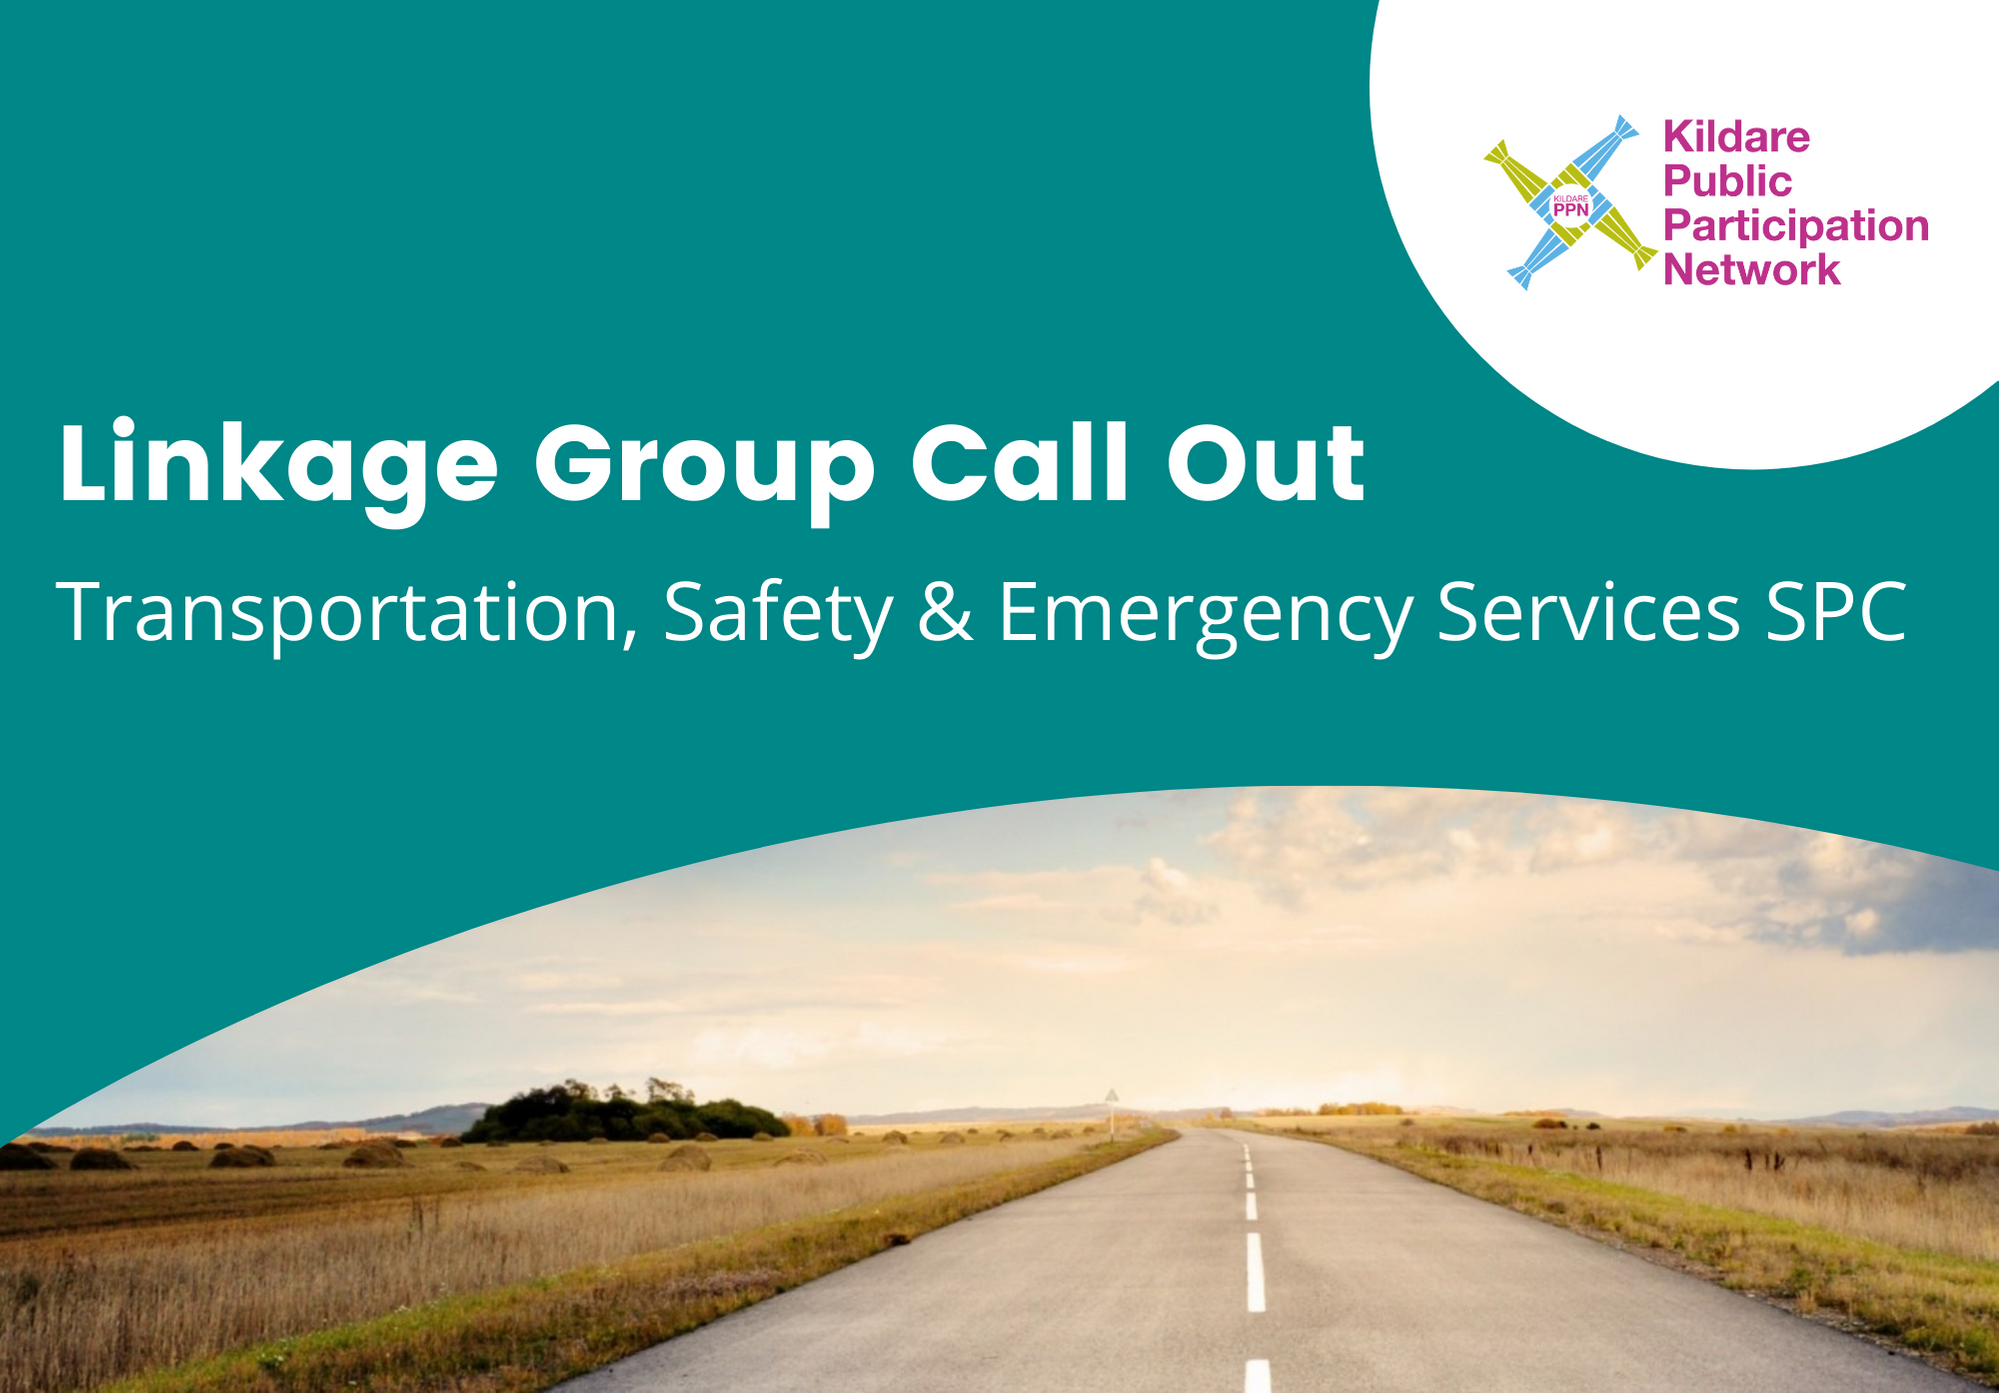 Transport Linkage Group Expression of Interest